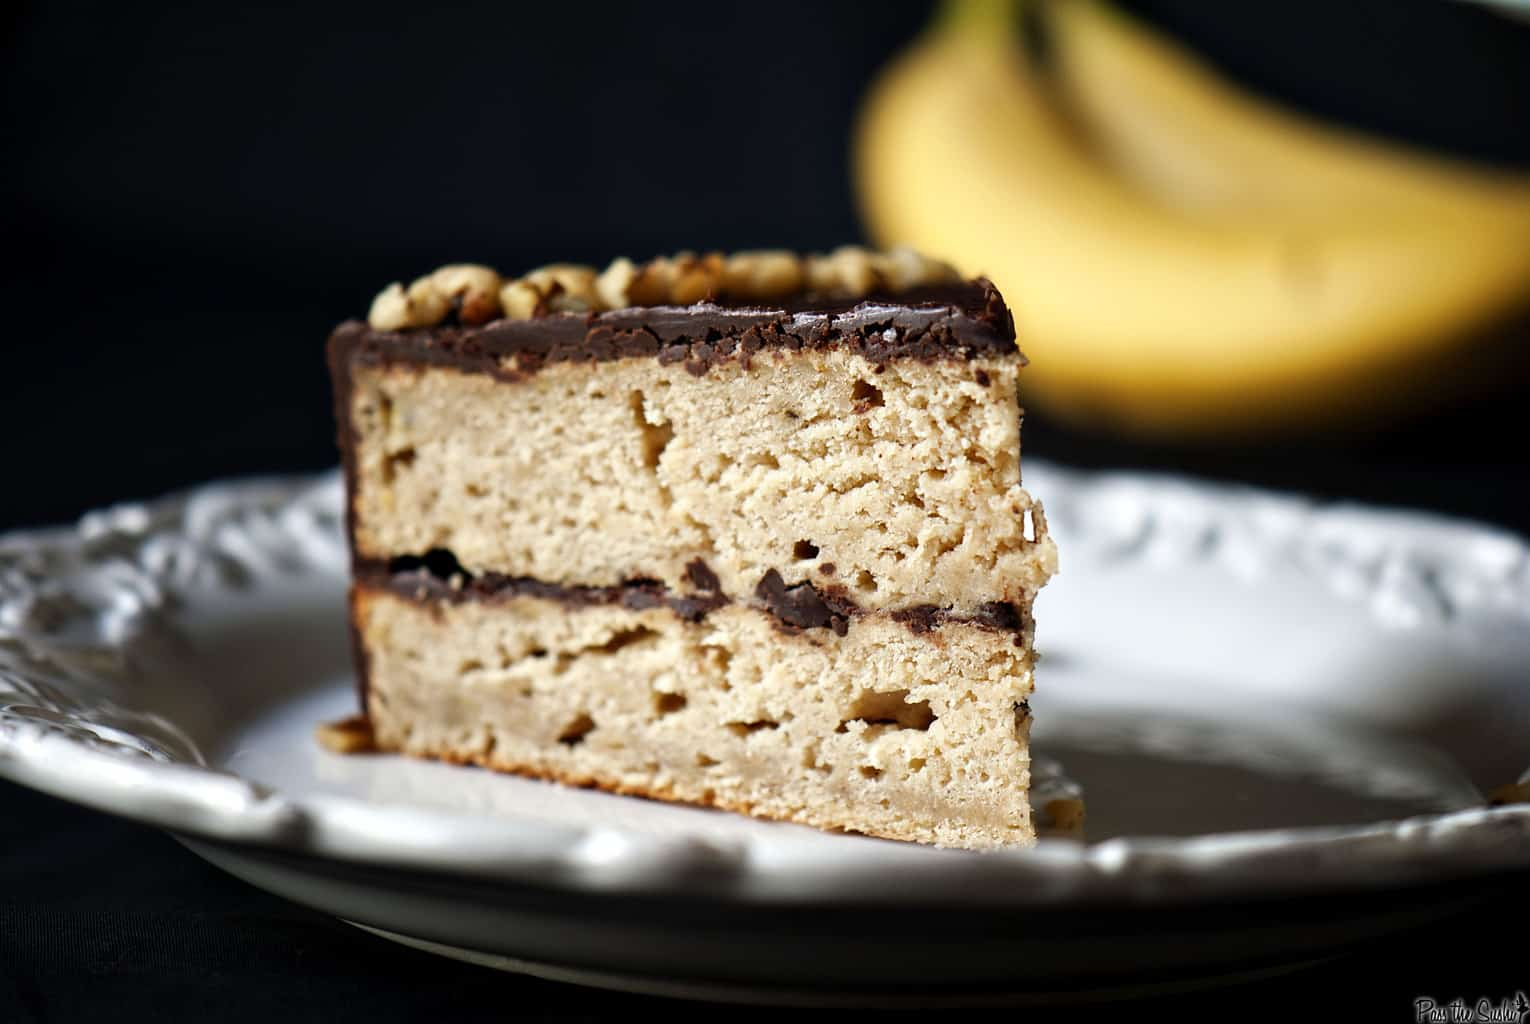 Banana Cake with Chocolate Glaze